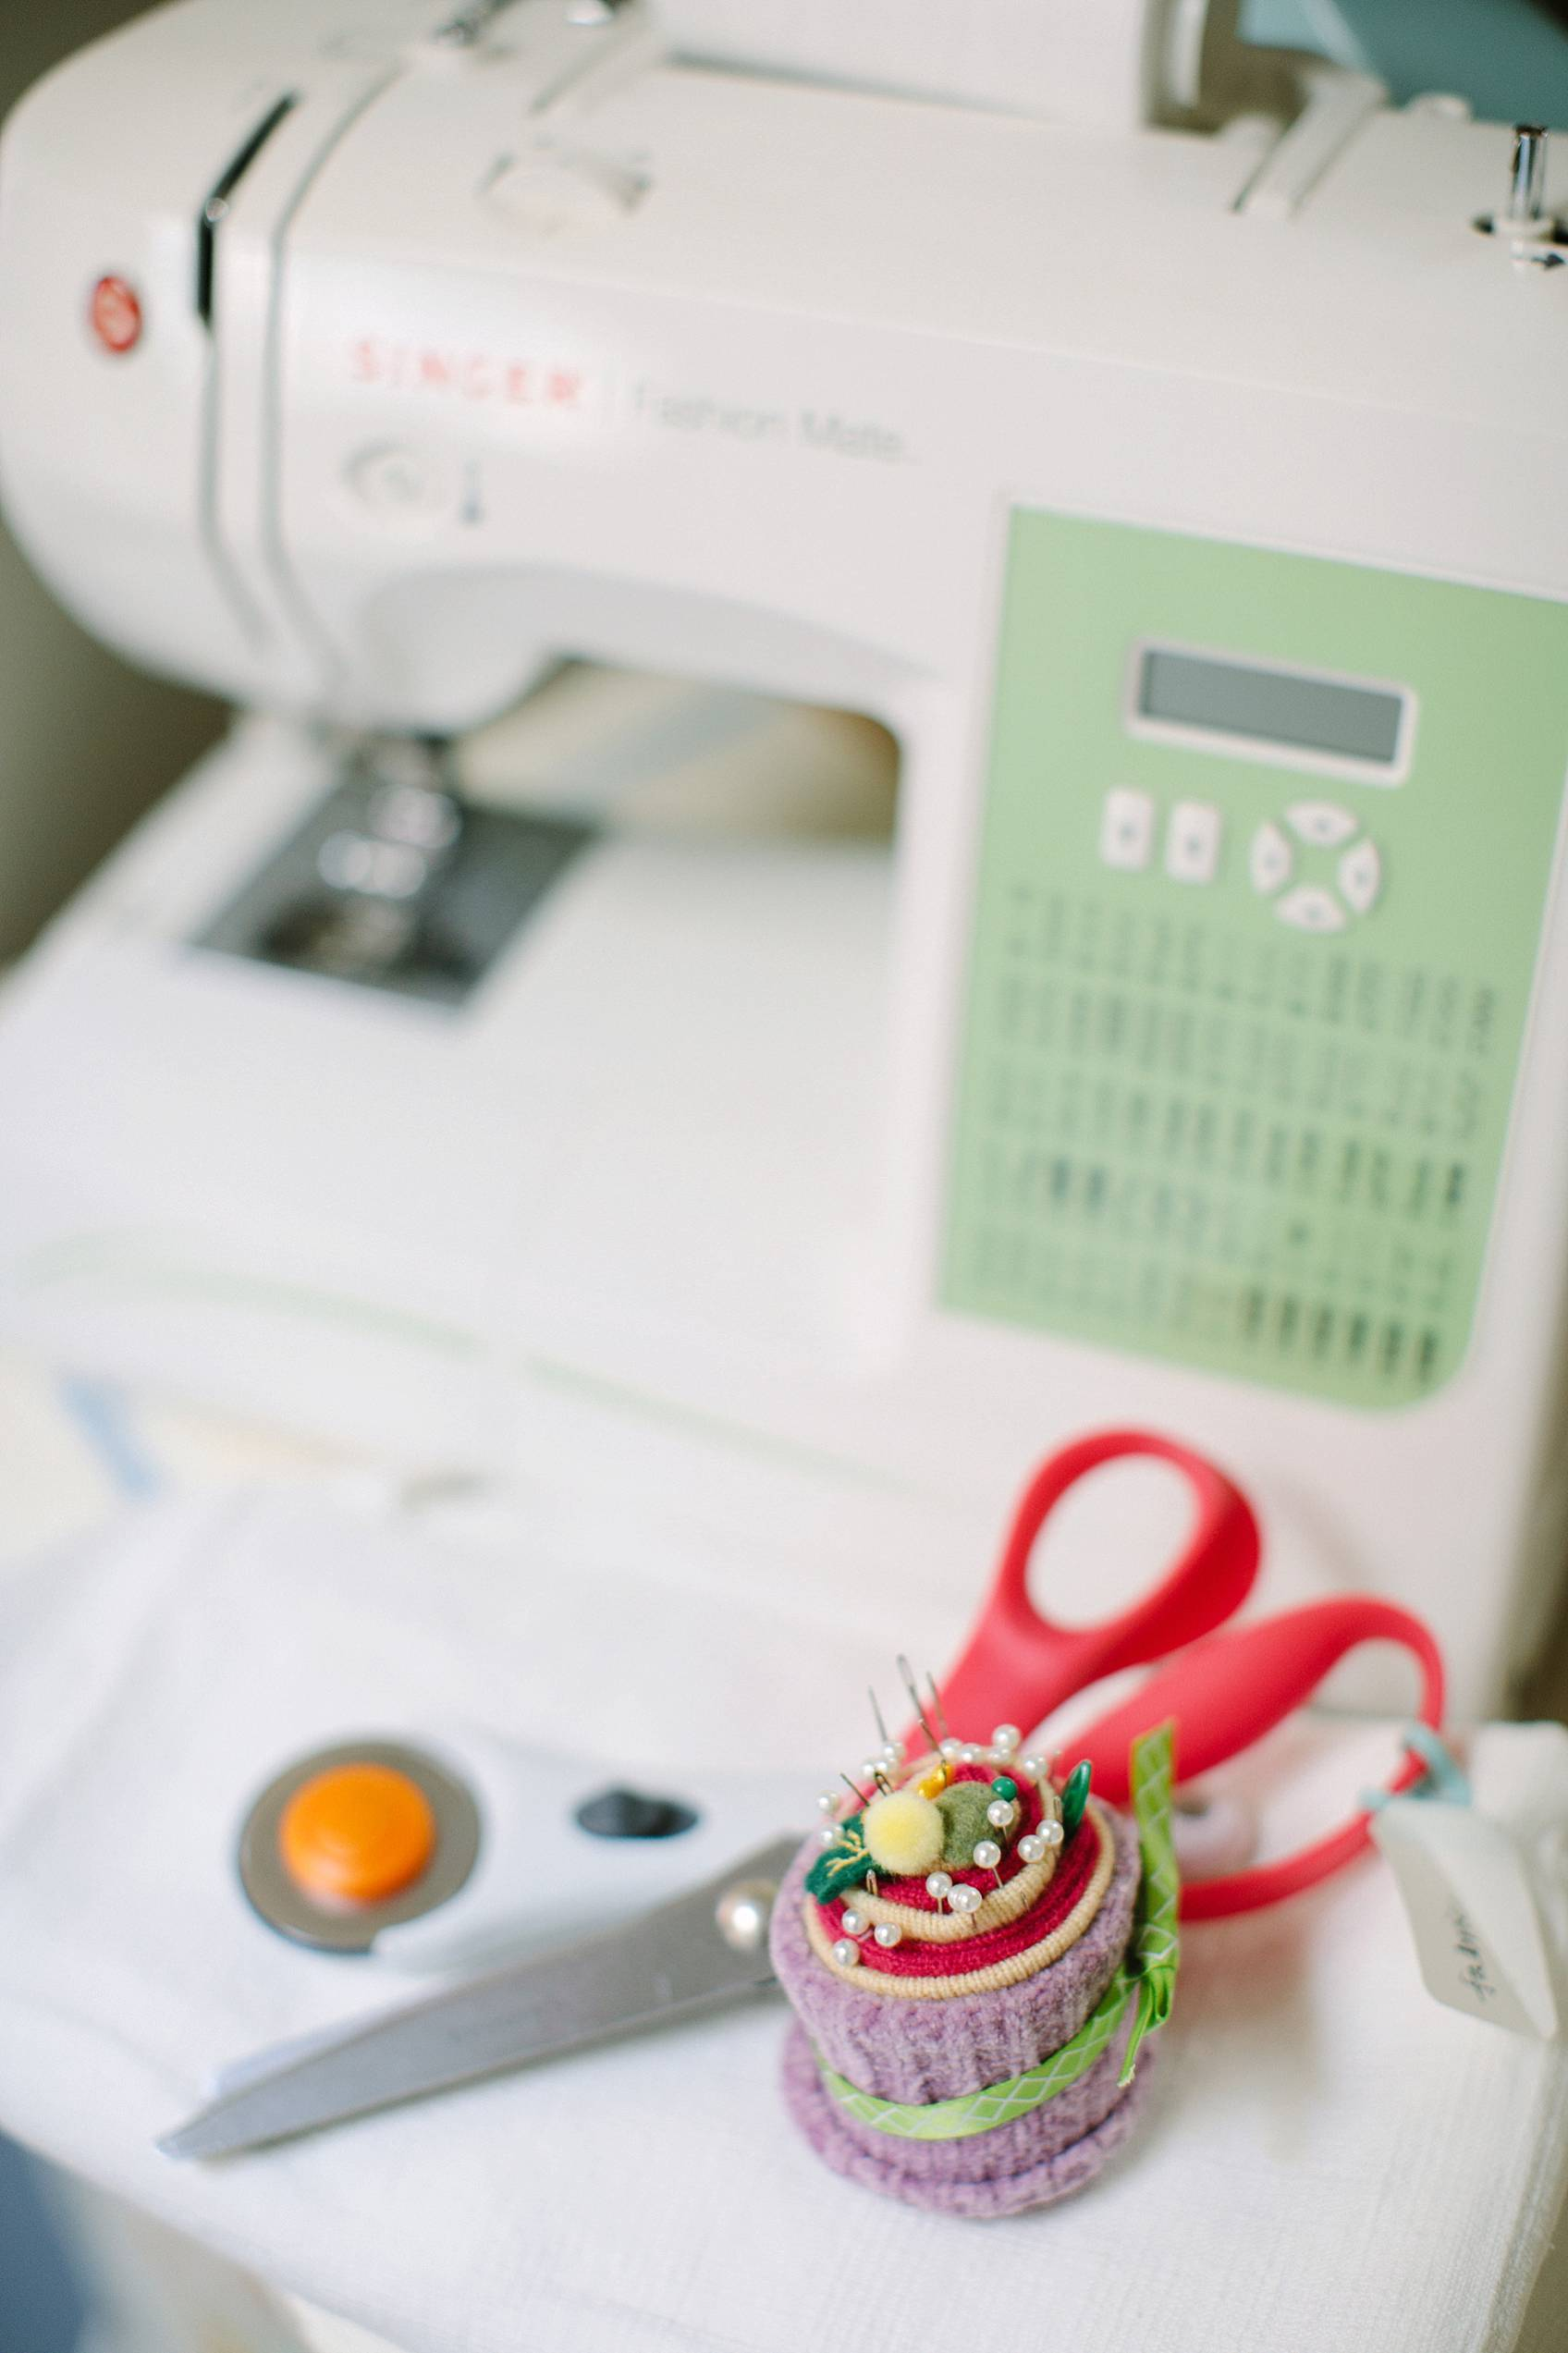 sewing machine with fabric scissors and fabric cuter and pin cushion